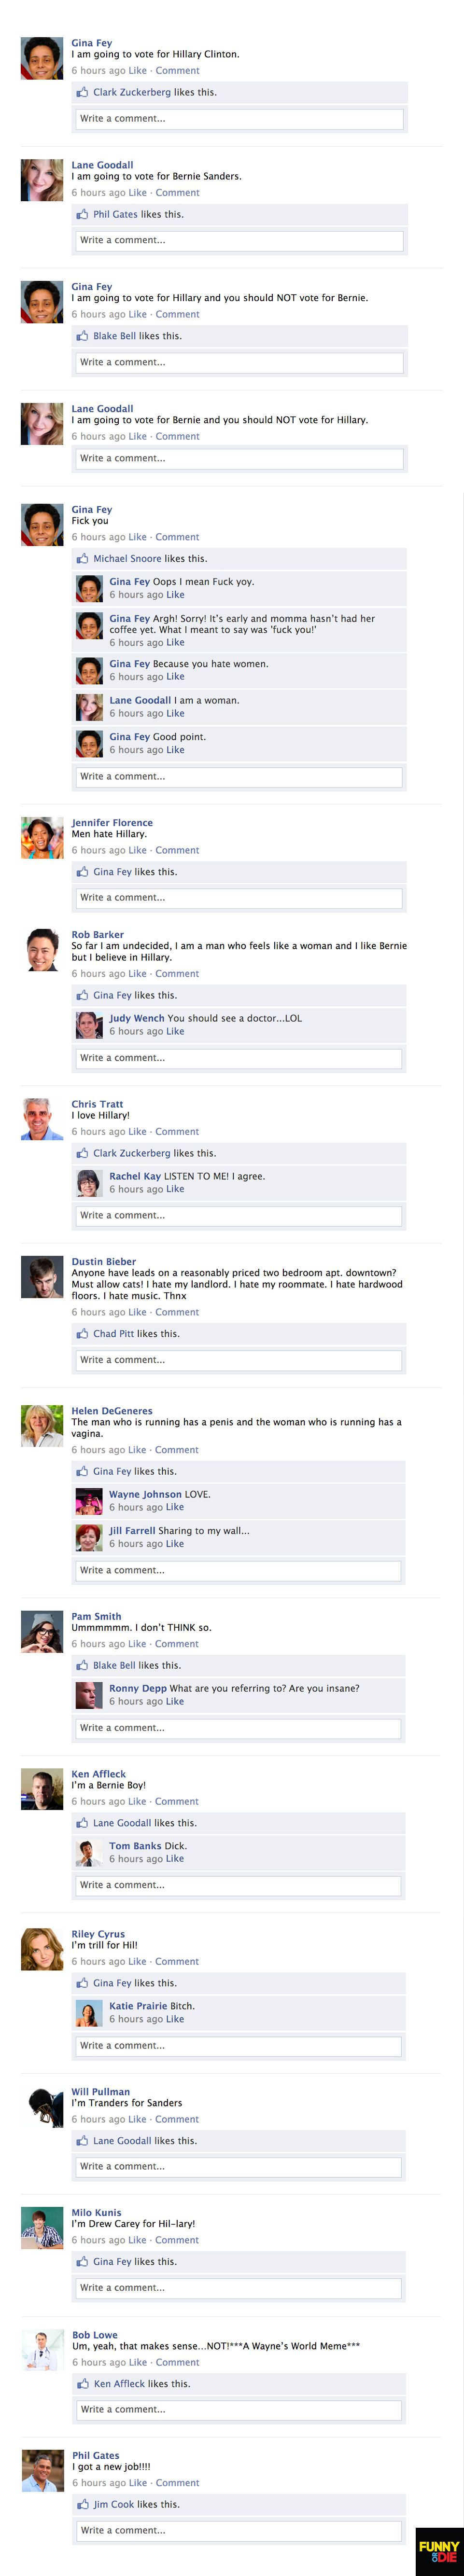 Your Facebook Feed During The Democratic Primary - Funny Or Die